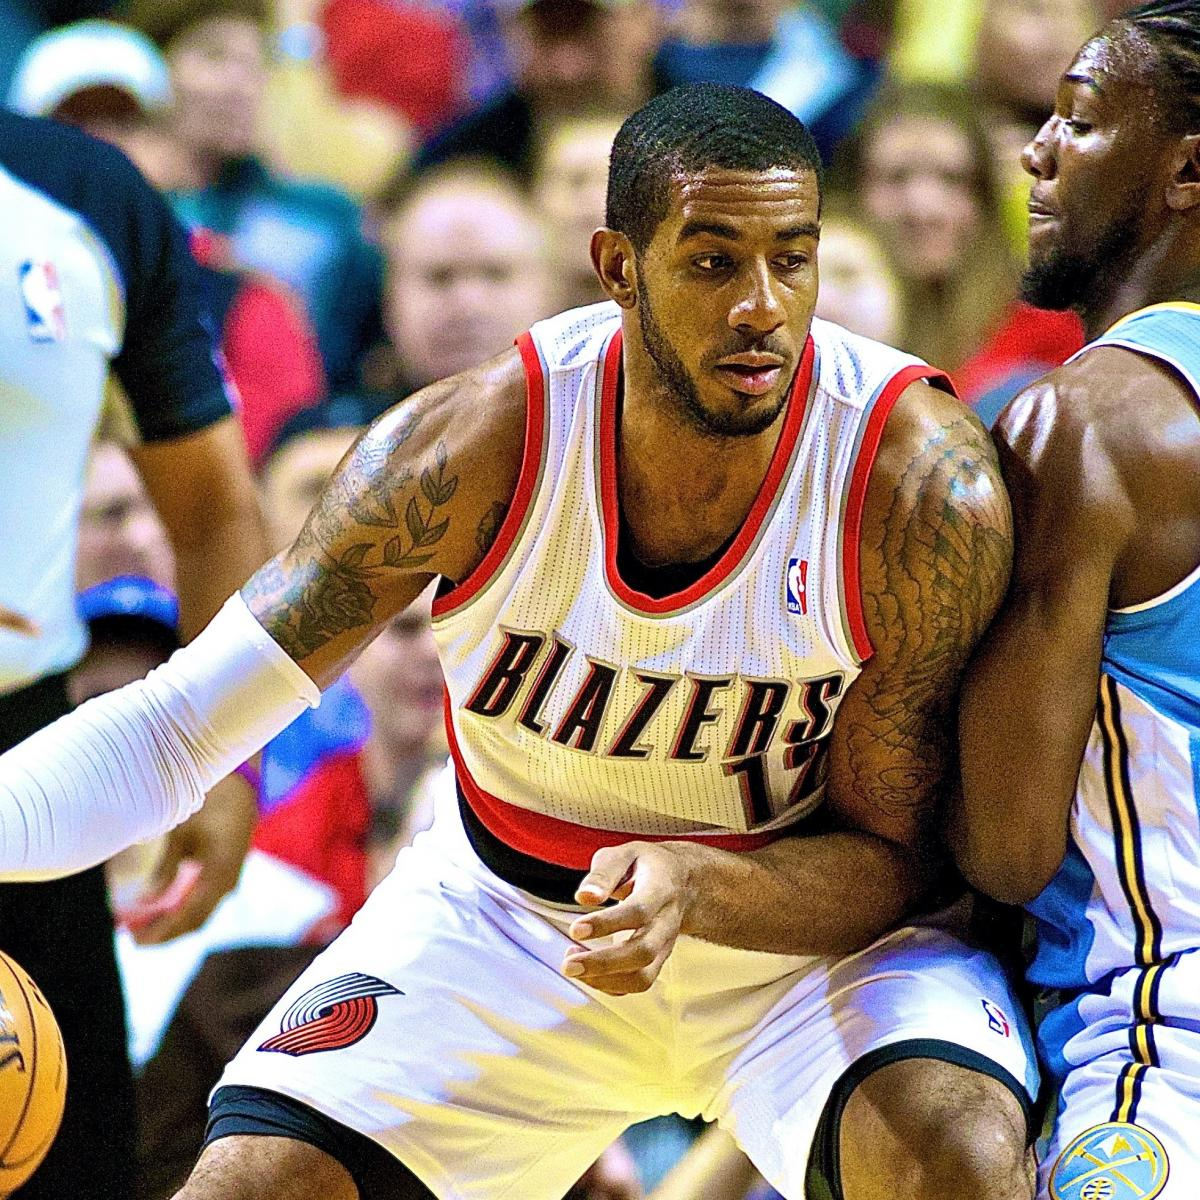 Denver Nuggets Vs. Portland Trail Blazers: Live Score And